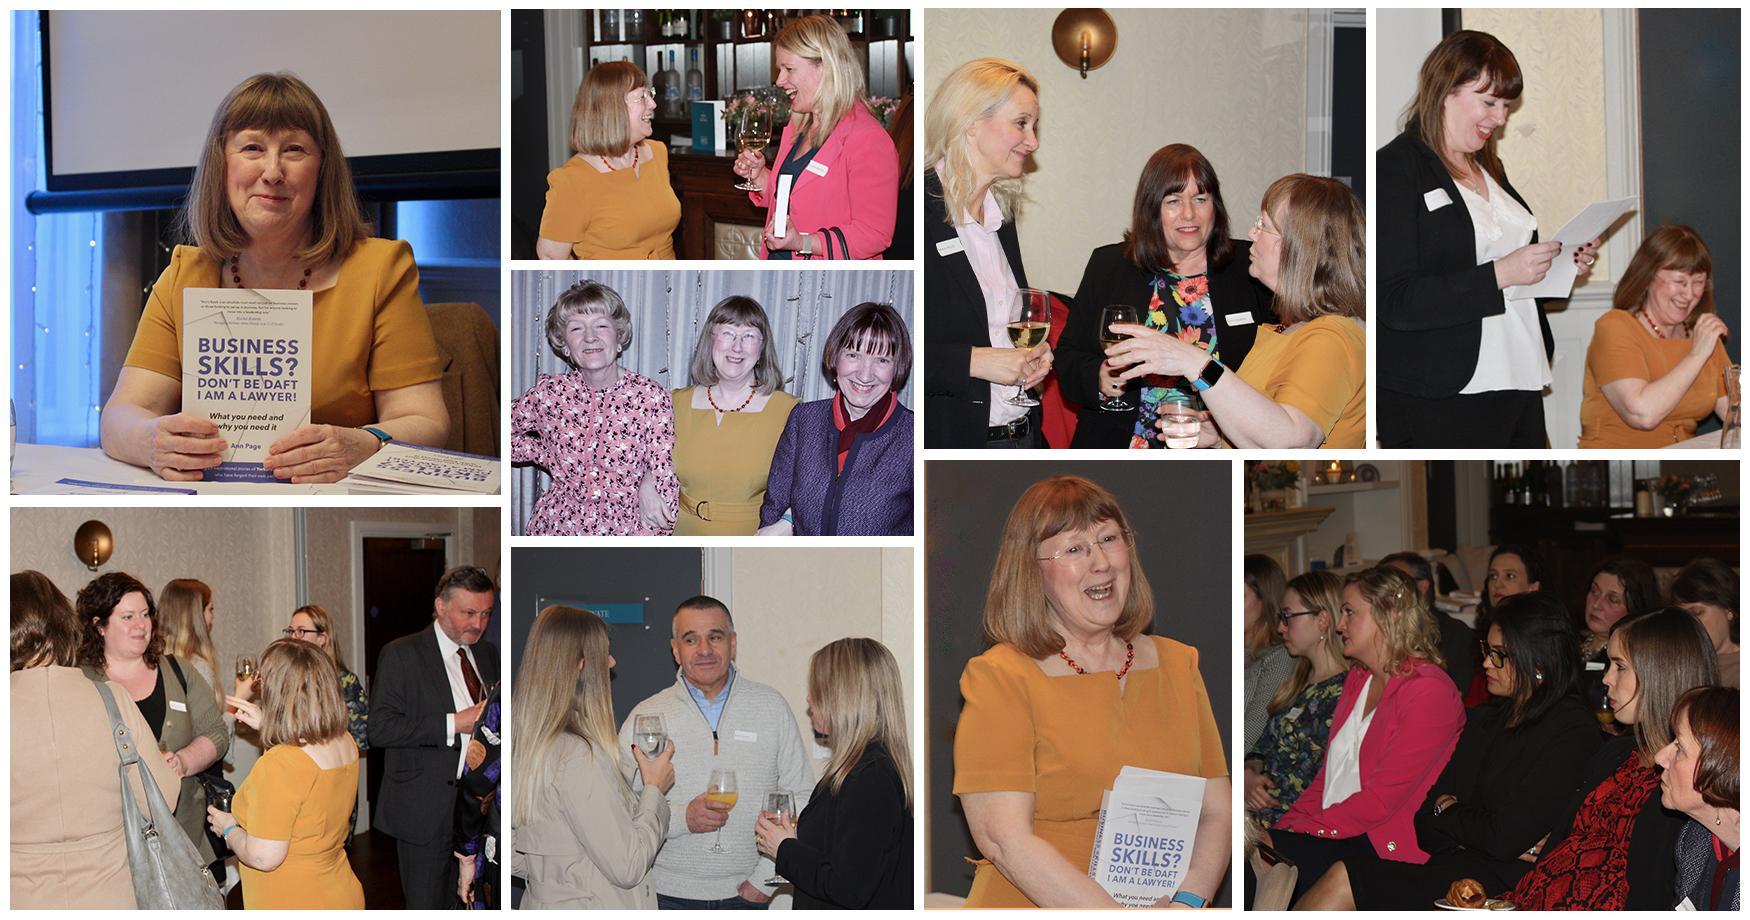 Images from book launch in Harrogate